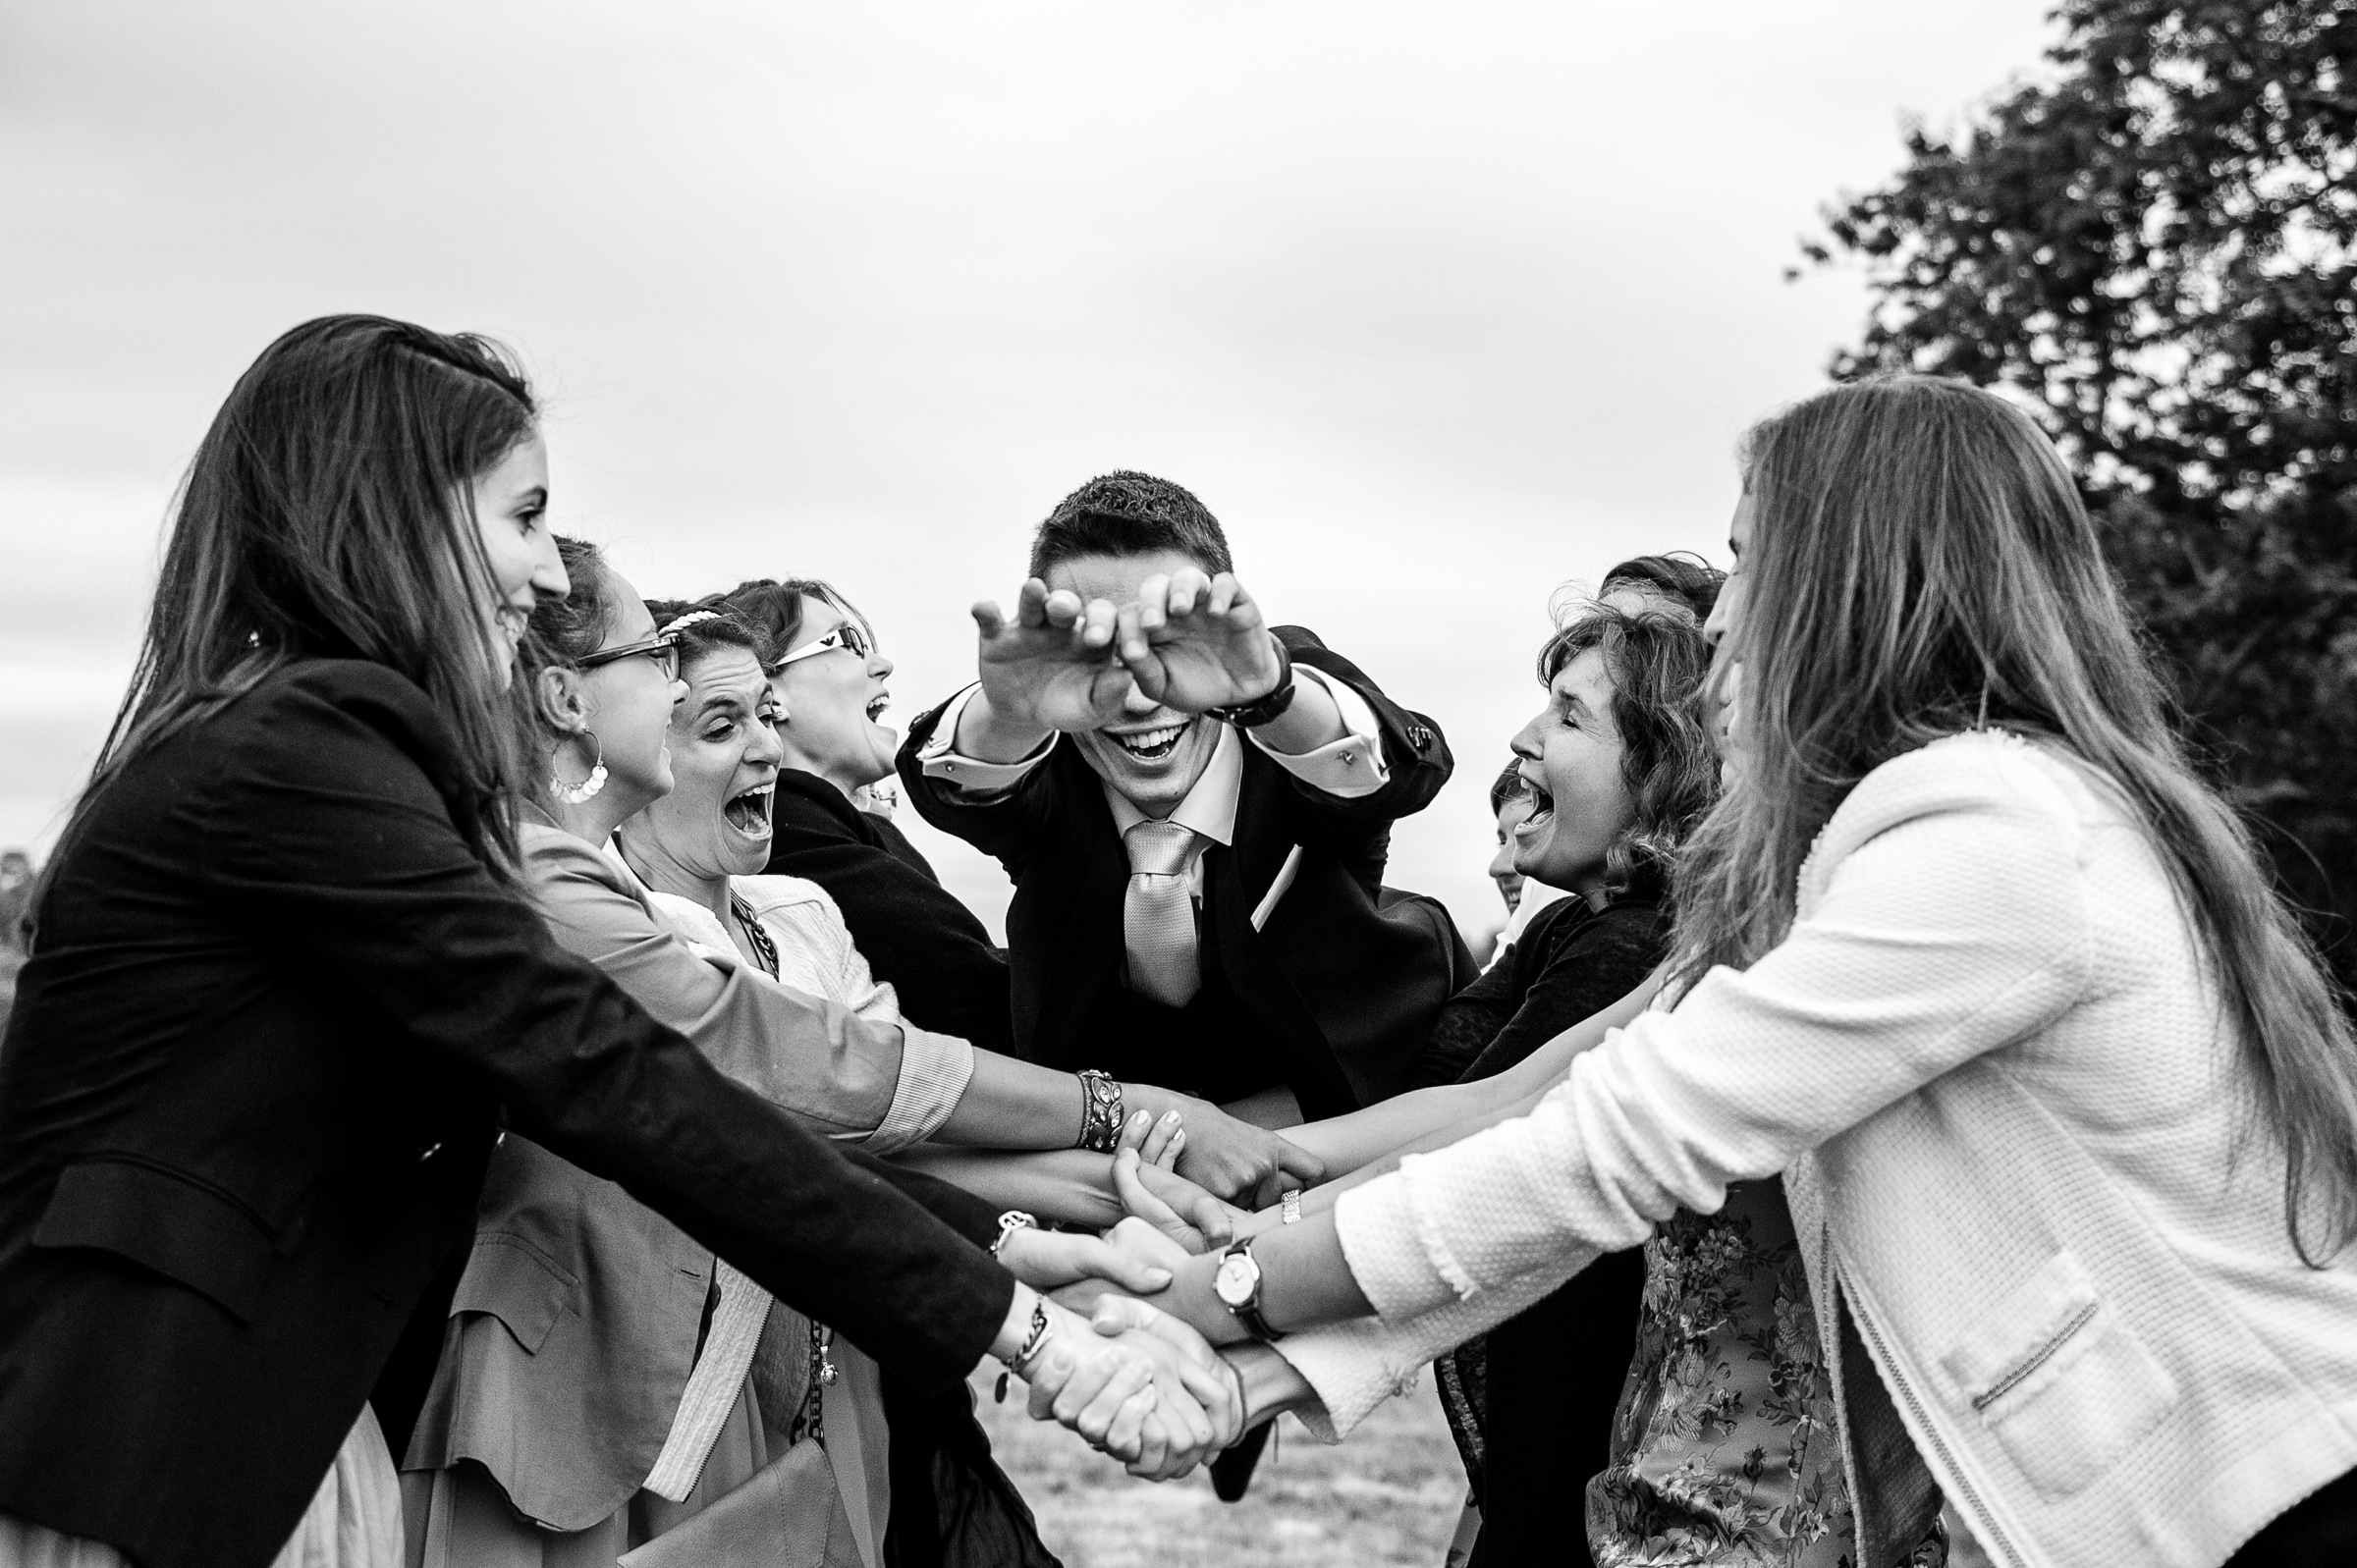 groom diving onto outstretched arms - photo by Gaelle Le Berre Photography